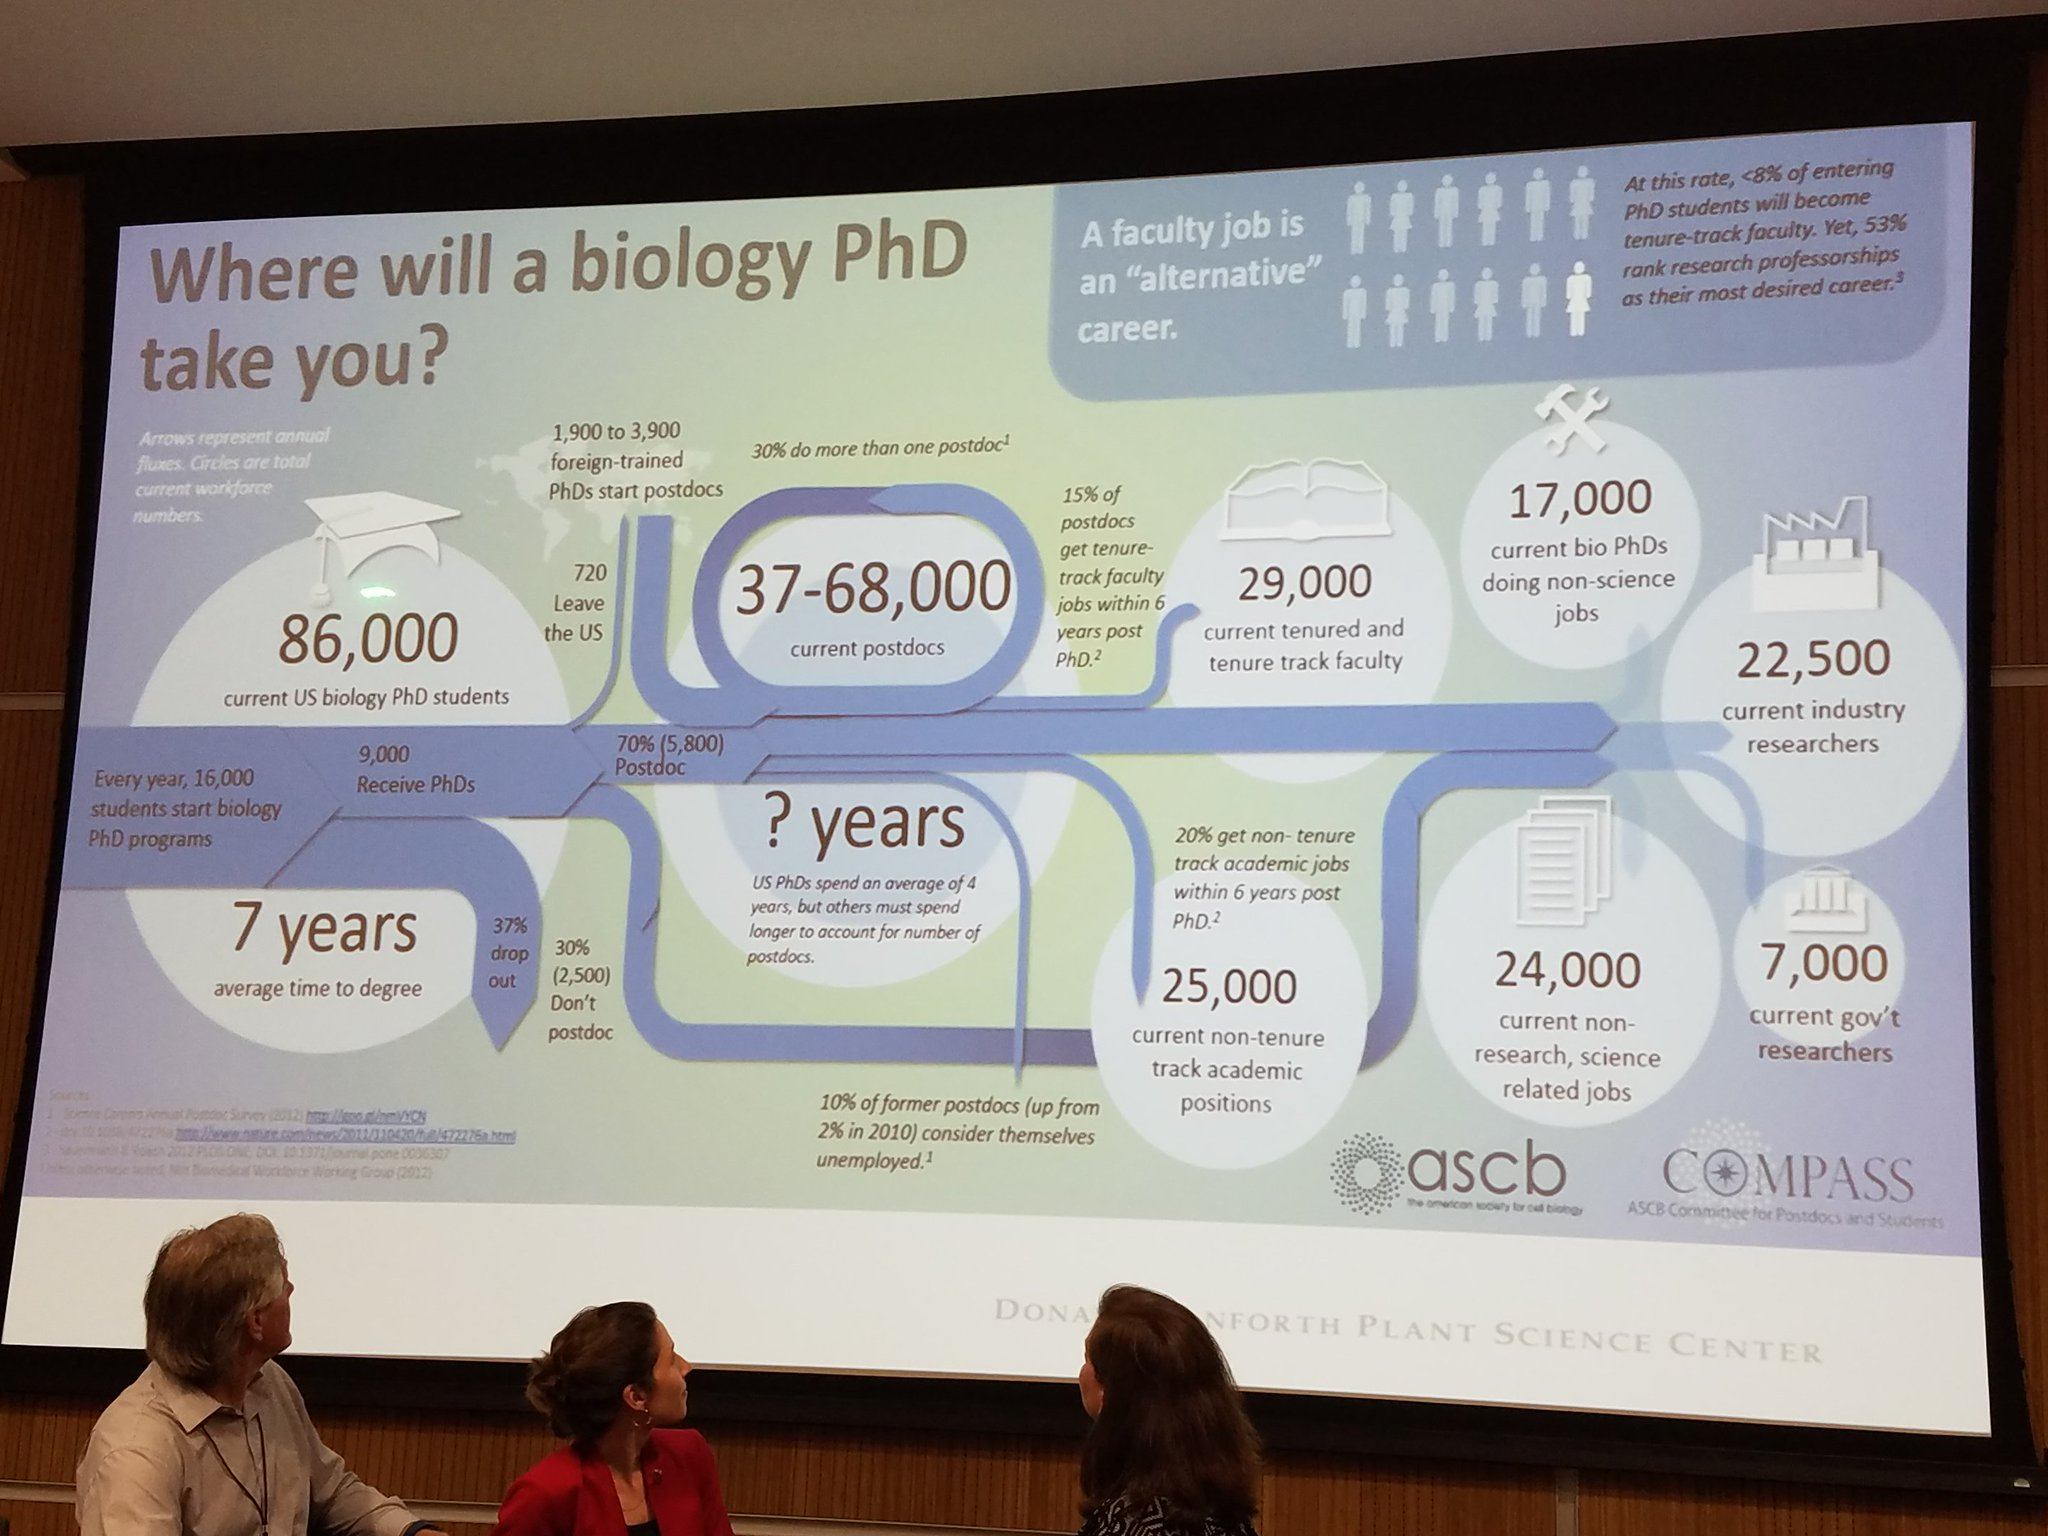 @DanforthCenter @ThePubClub Sam: shares stats of careers in science. Take Home: Academia is the #AlternativeCareer ! #icar2017 #TPCOnTheRoad #DiverseSkills https://t.co/rHoB1BVU5W